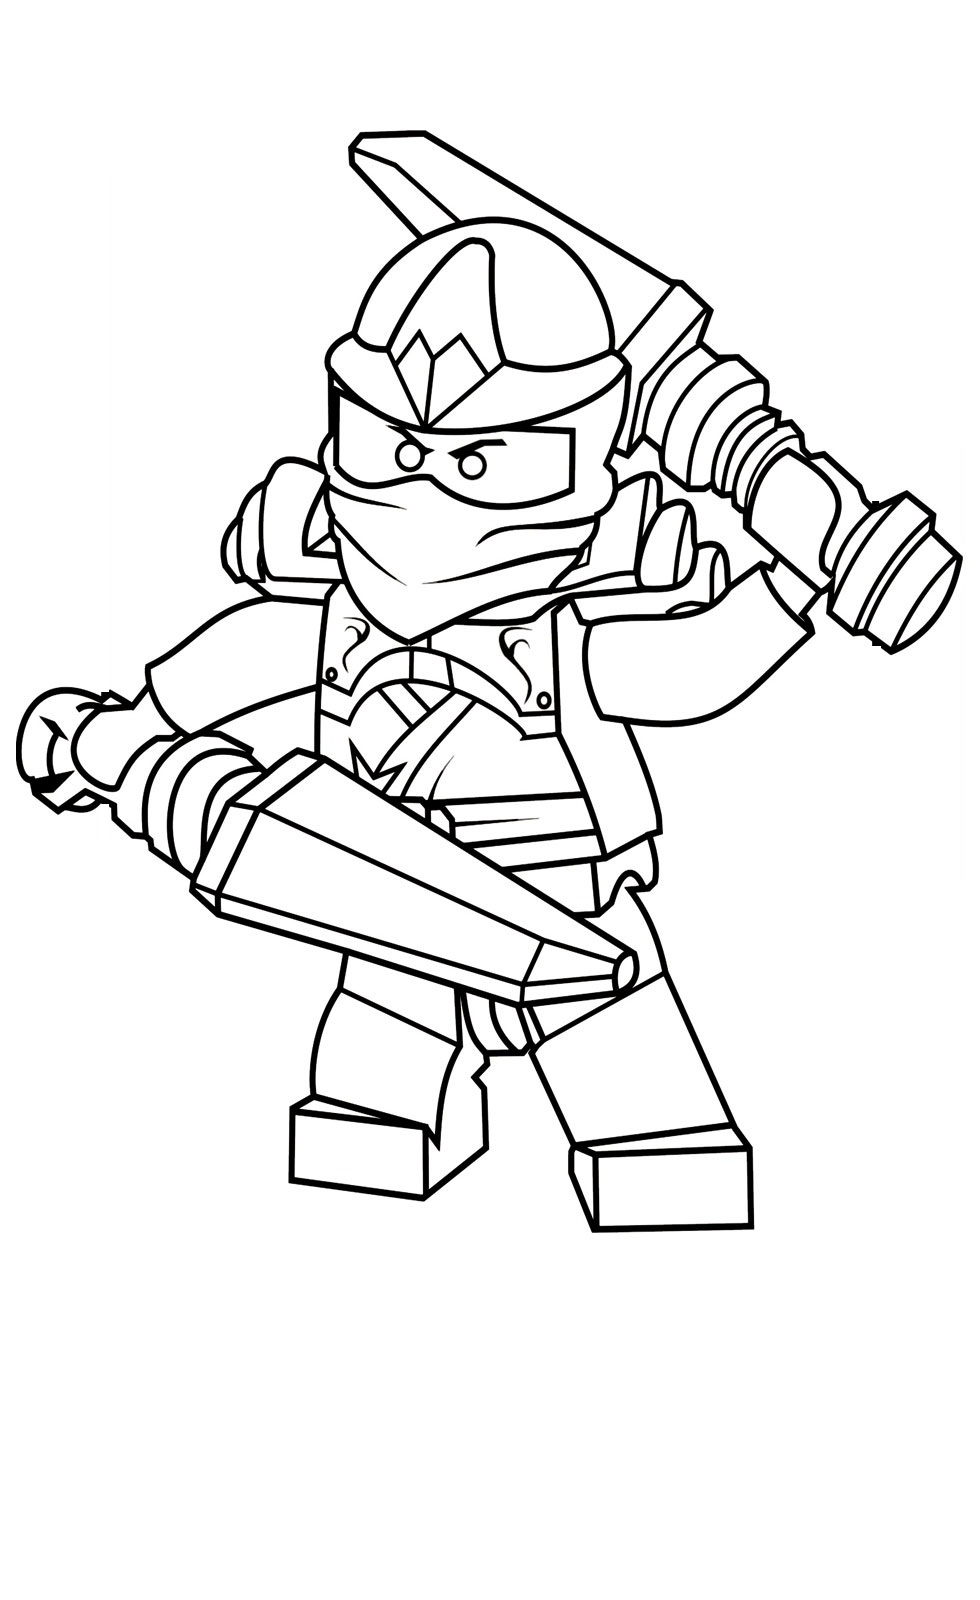 980x1600 Lego Ninjago Coloring Pages For Kids Printable Coloring Sheets